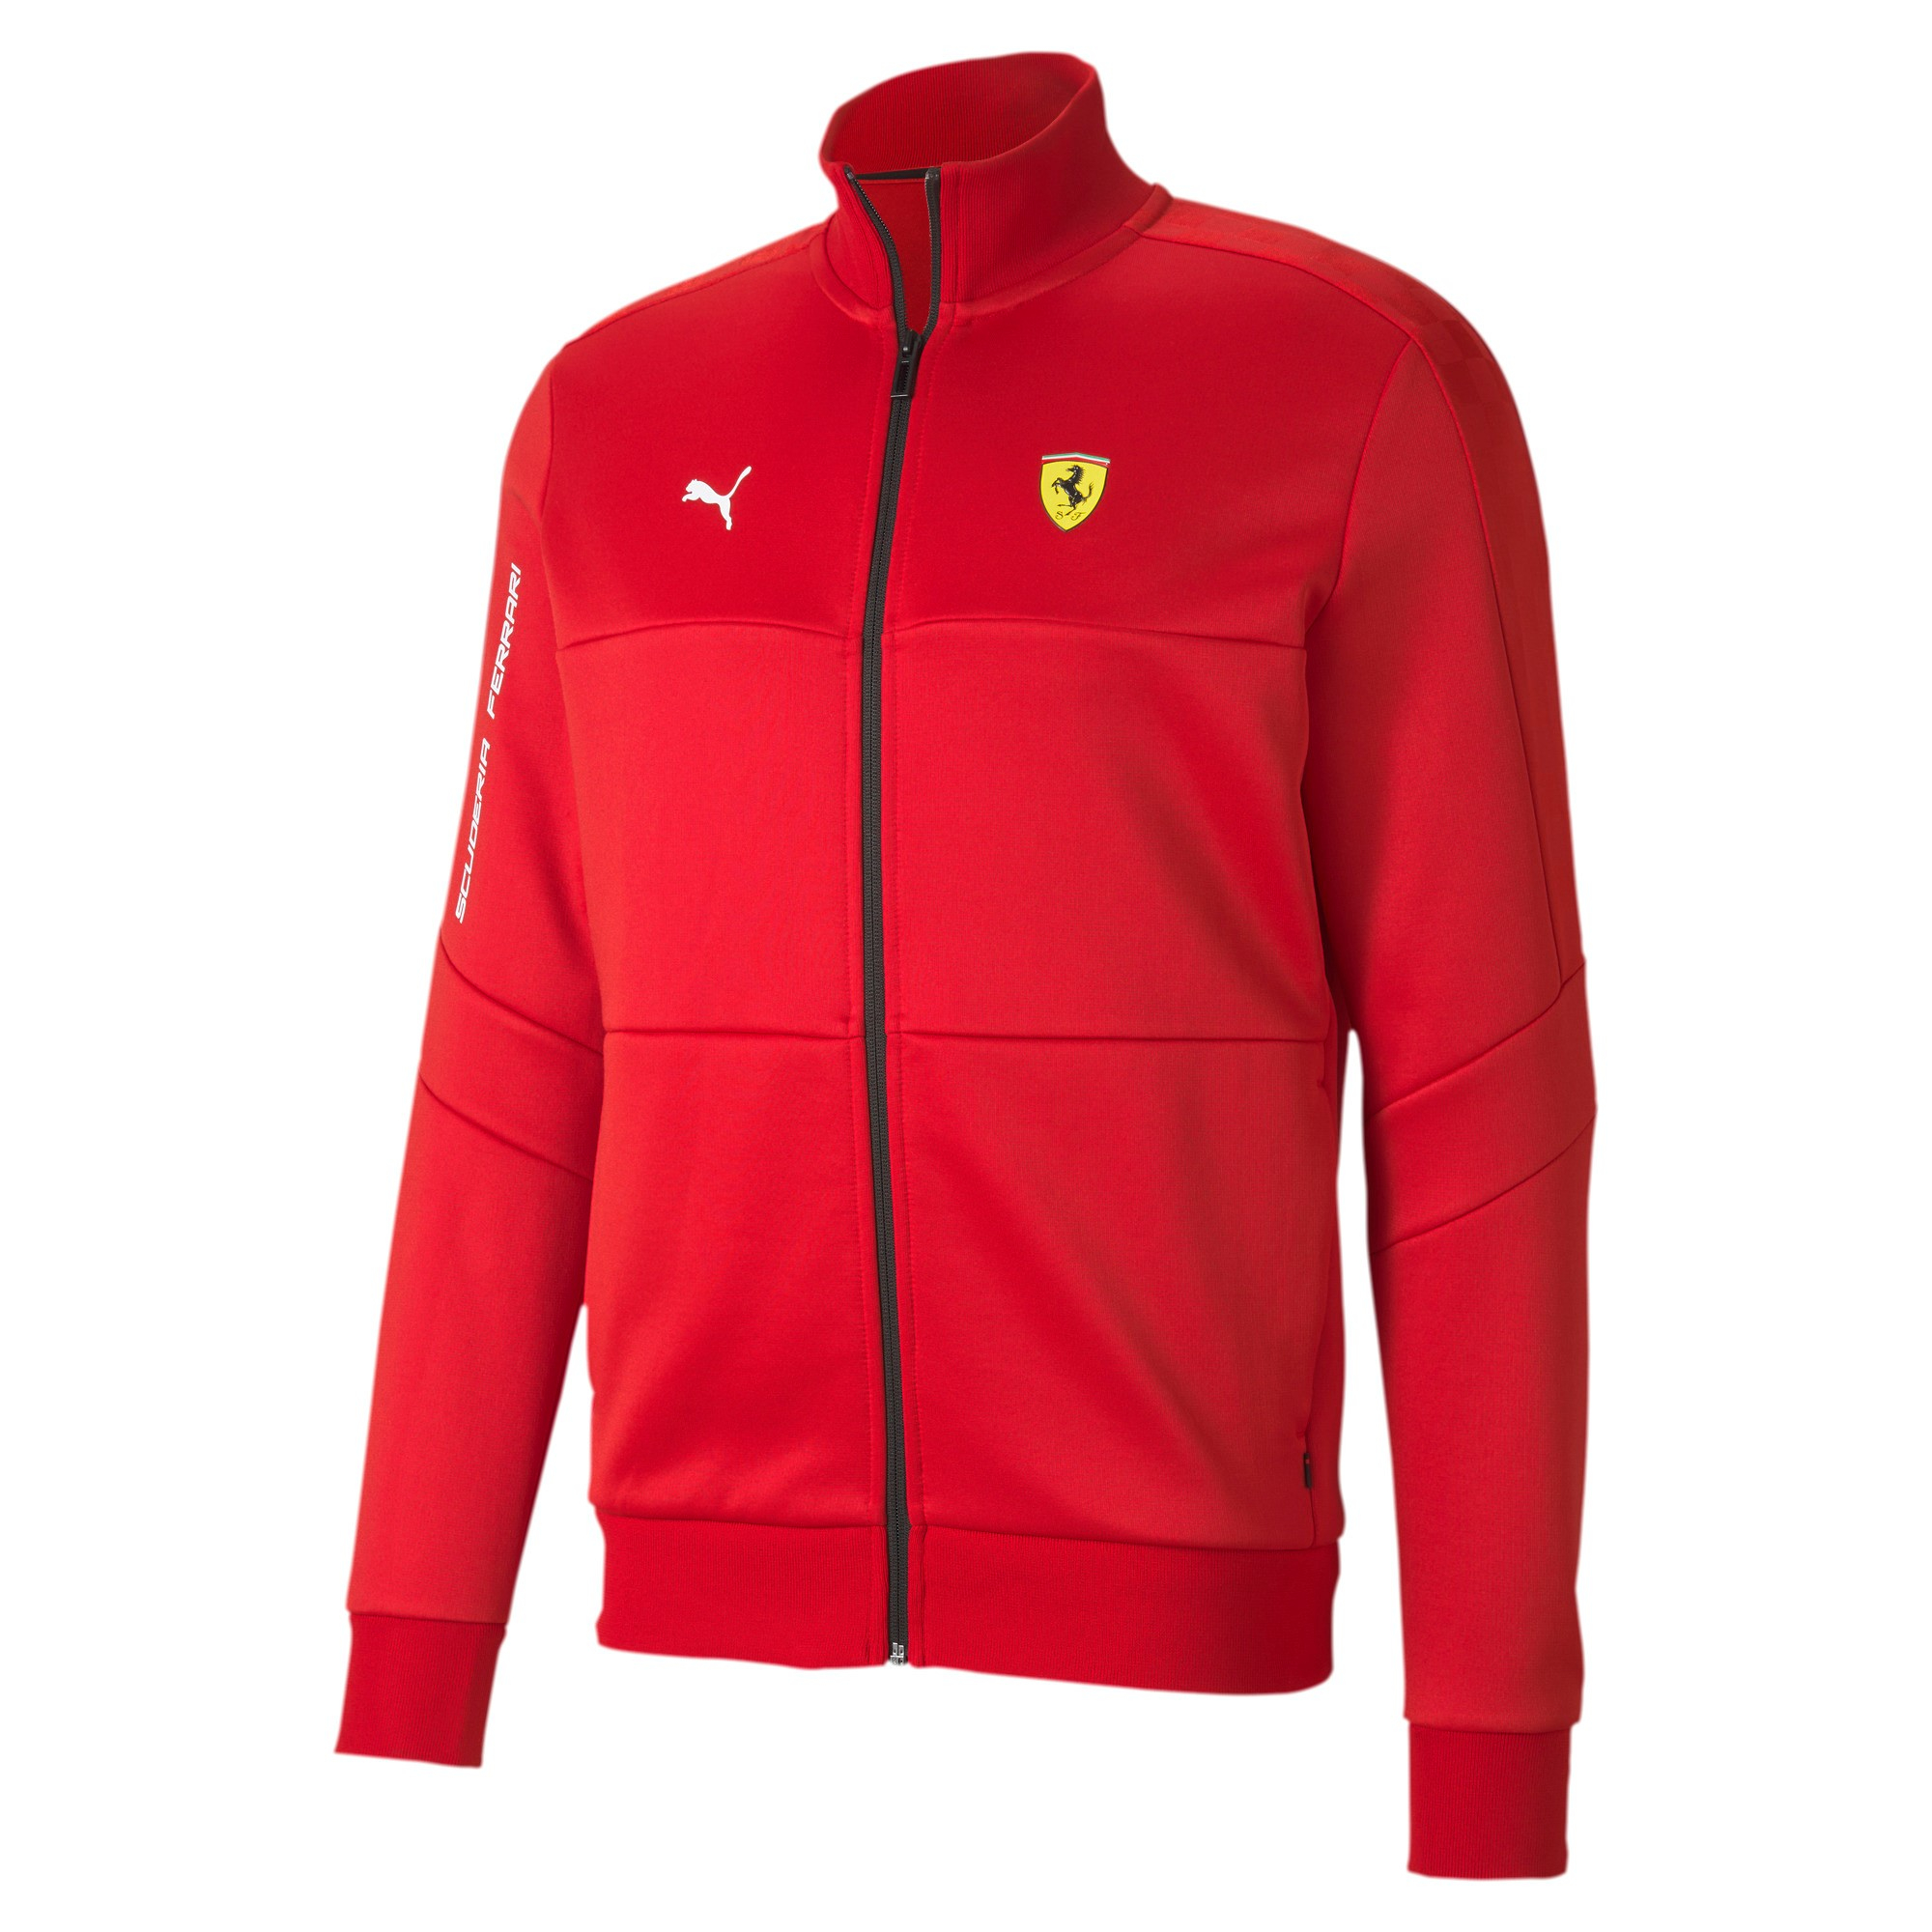 SF T7 Track Jacket Rosso Corsa